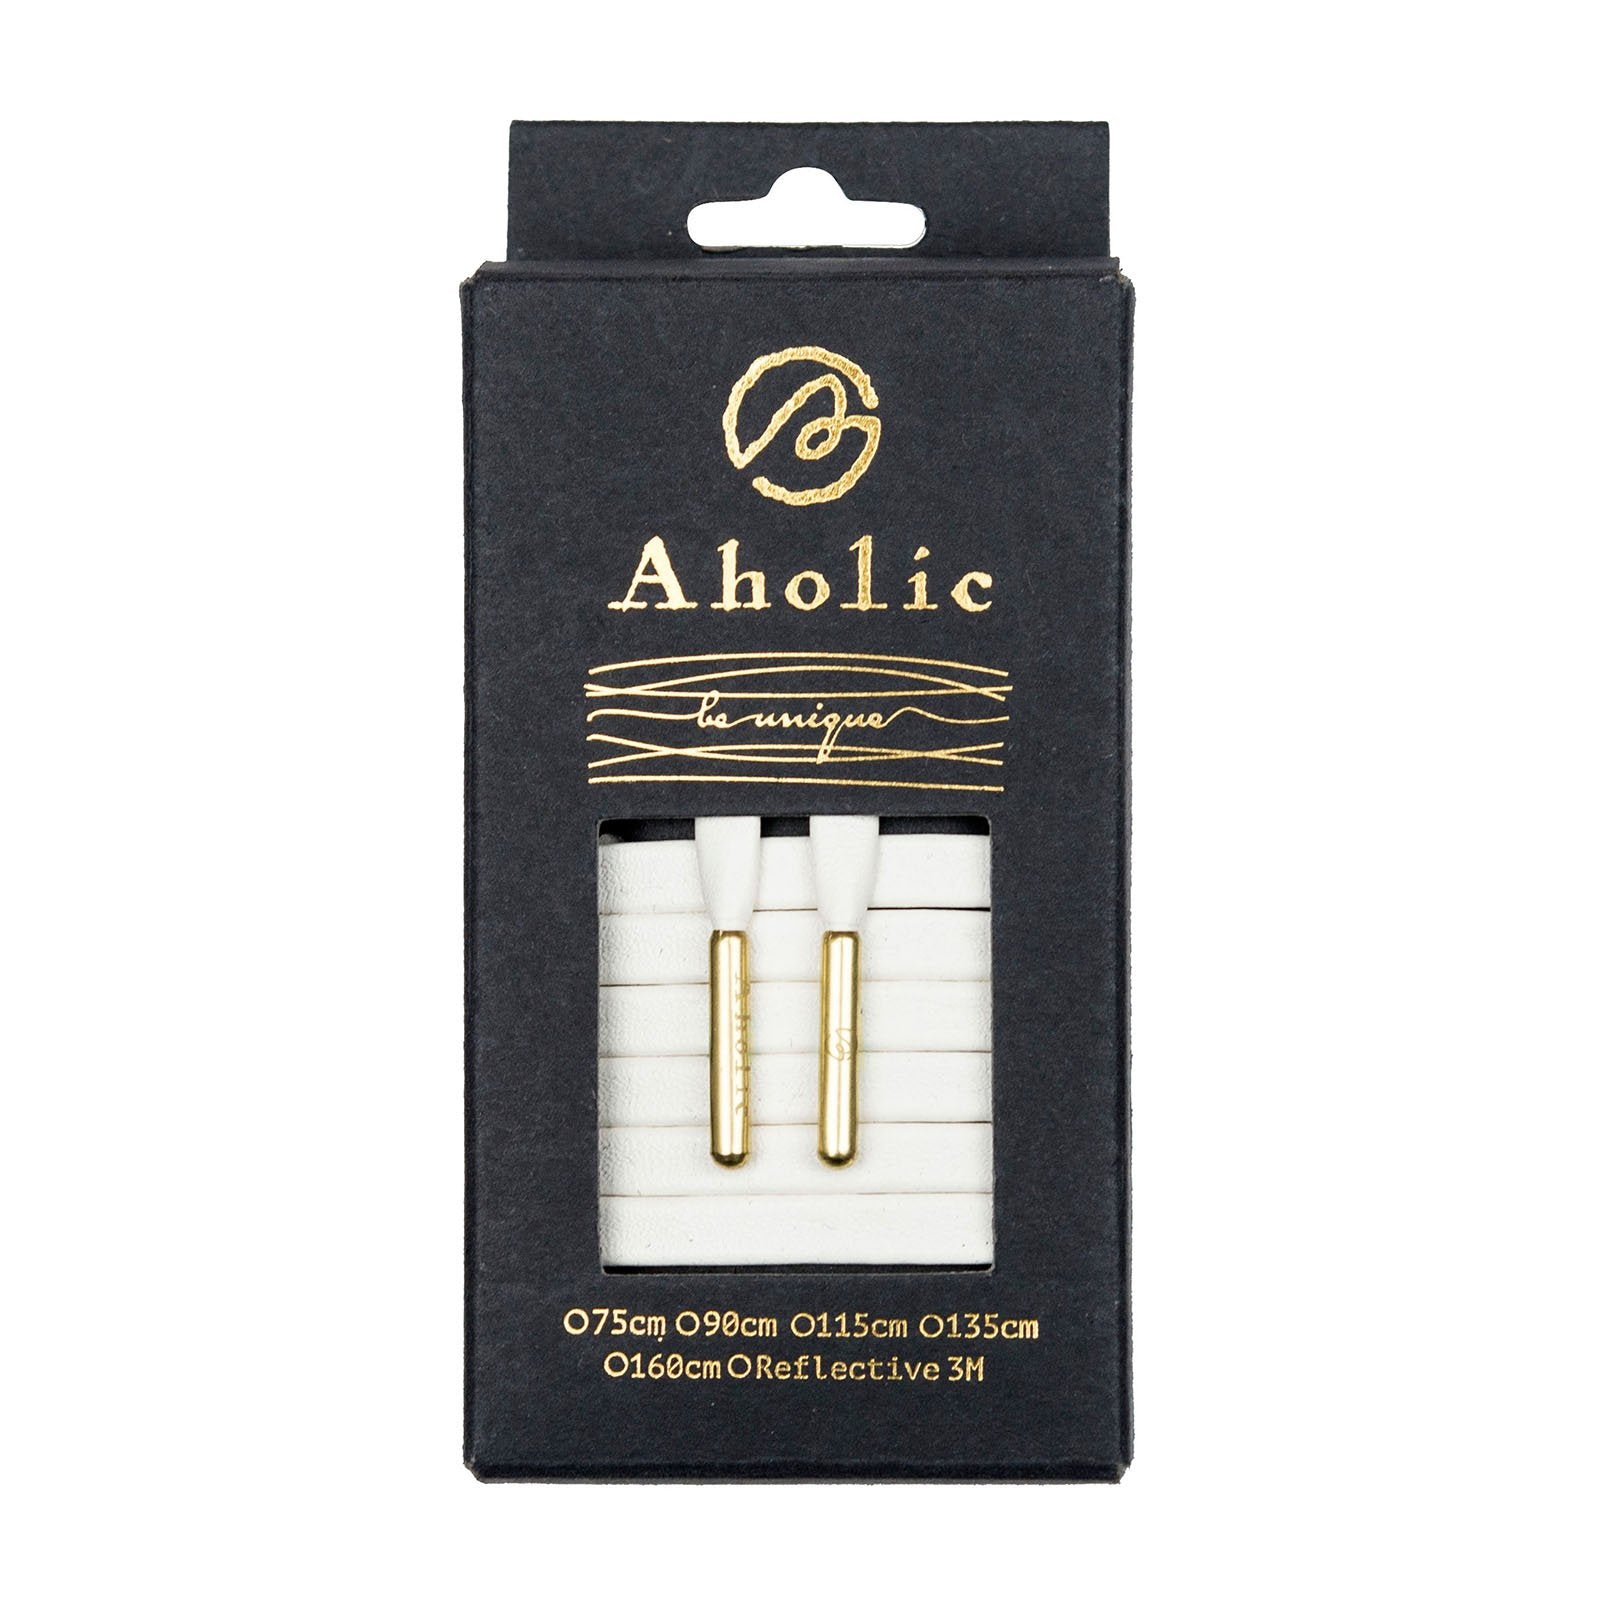 Aholic Venus Leather Shoelaces with Metal Tips (奢華皮革鞋帶) - Exquisite White/Gold (精緻白)-Shoelaces-Navy Selected Shop